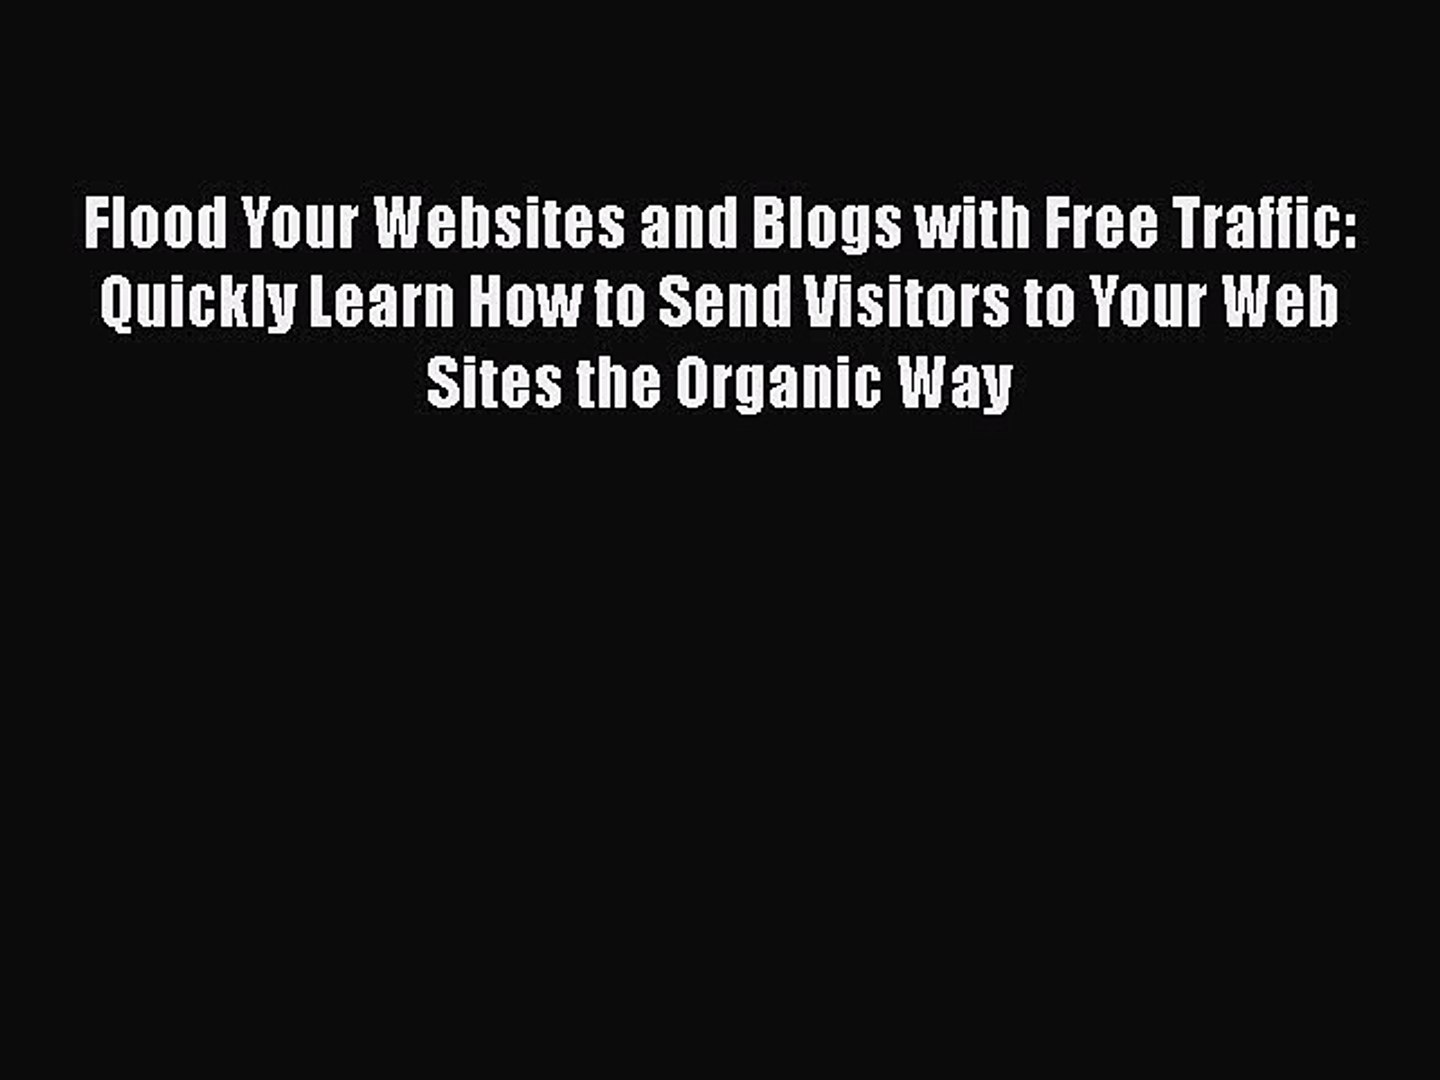 Read Flood Your Websites and Blogs with Free Traffic: Quickly Learn How to Send Visitors to